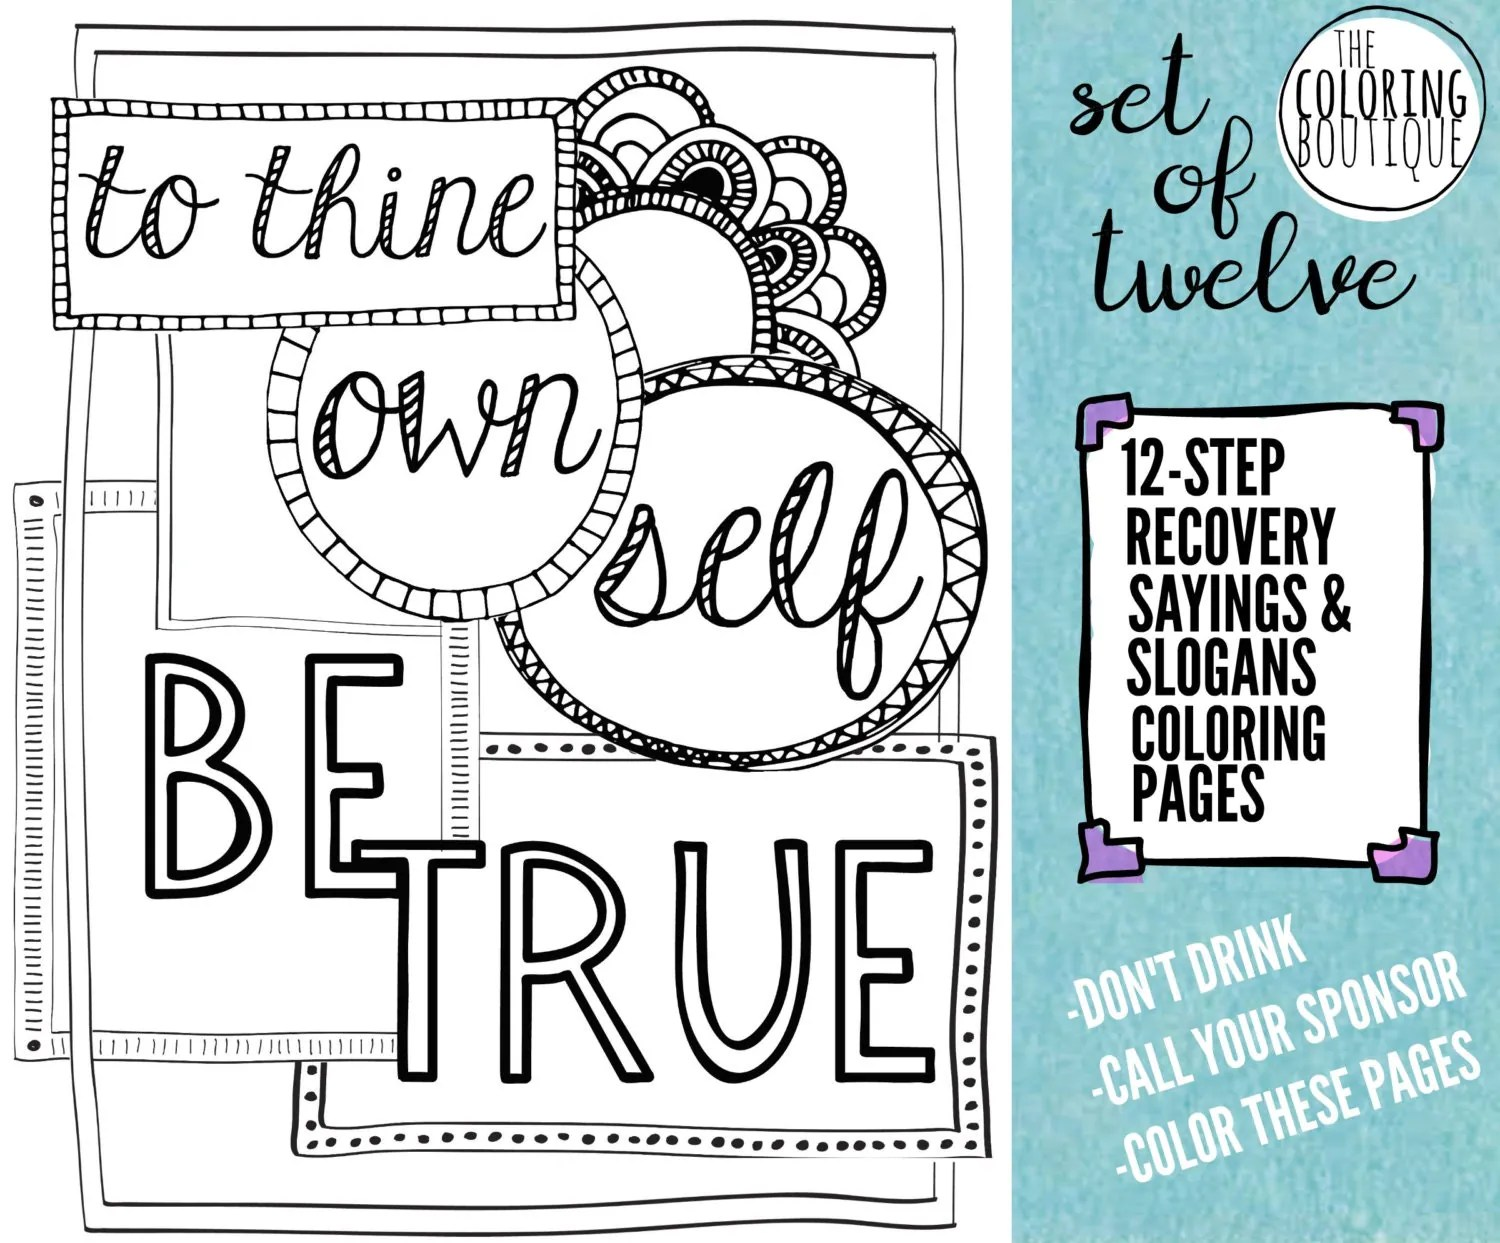 Recovery Coloring Pages 12 Steps Coloring By Thecoloringboutique